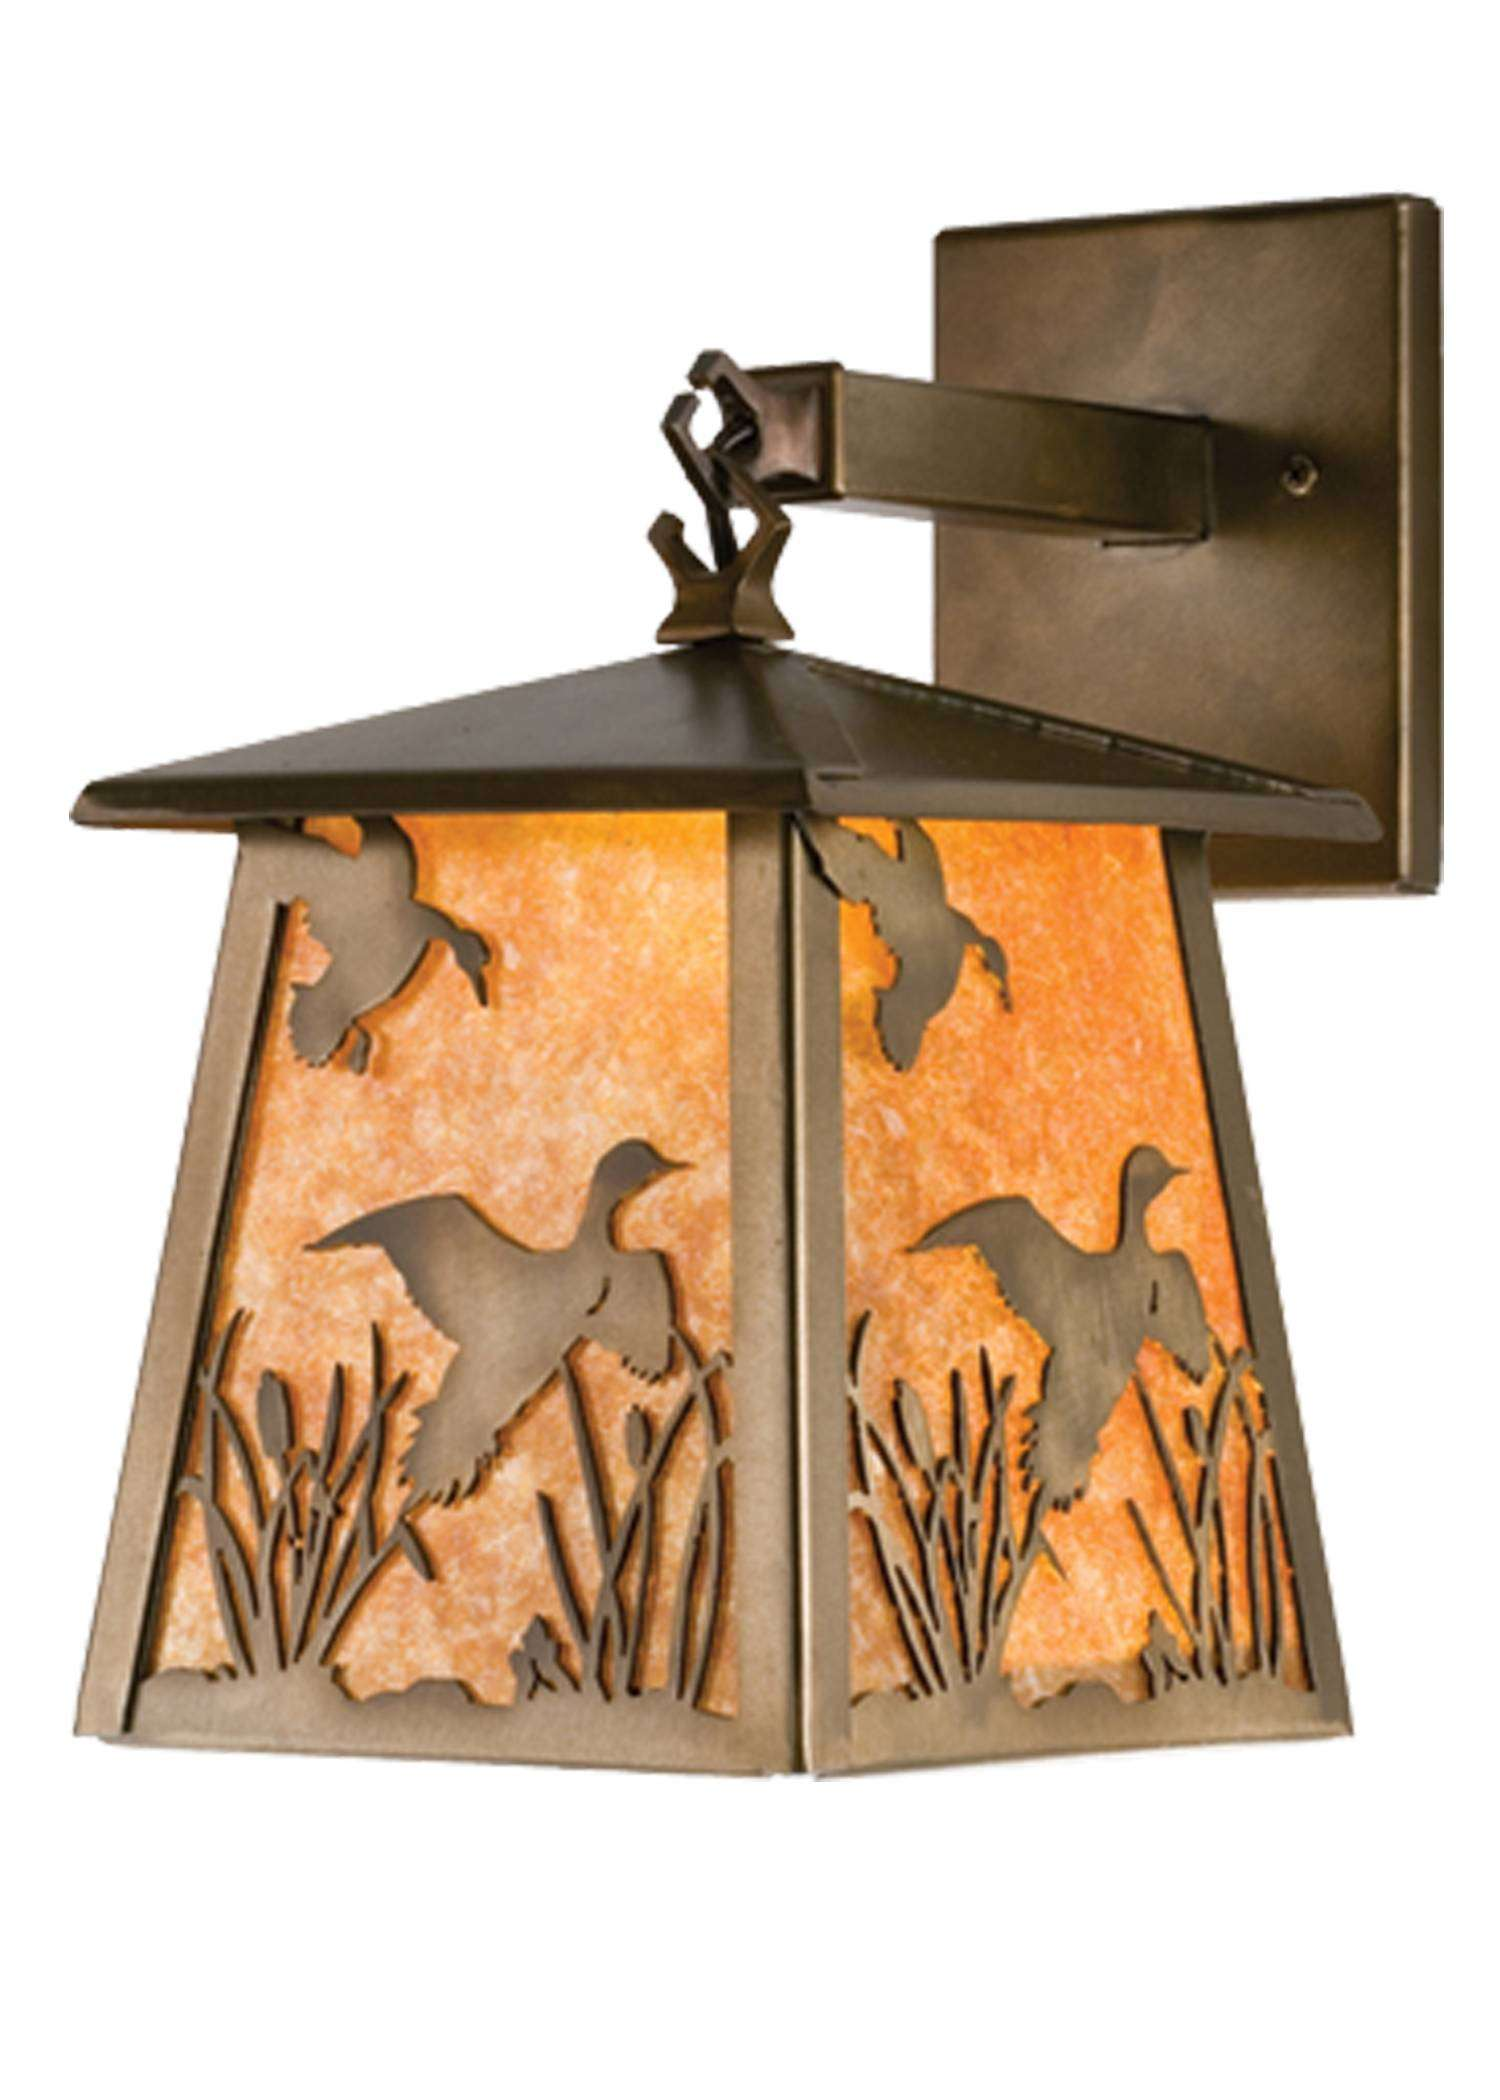 Meyda Tiffany 82652 Ducks In Flight Hanging Wall Sconce in Antique Copper finish with Amber Mica